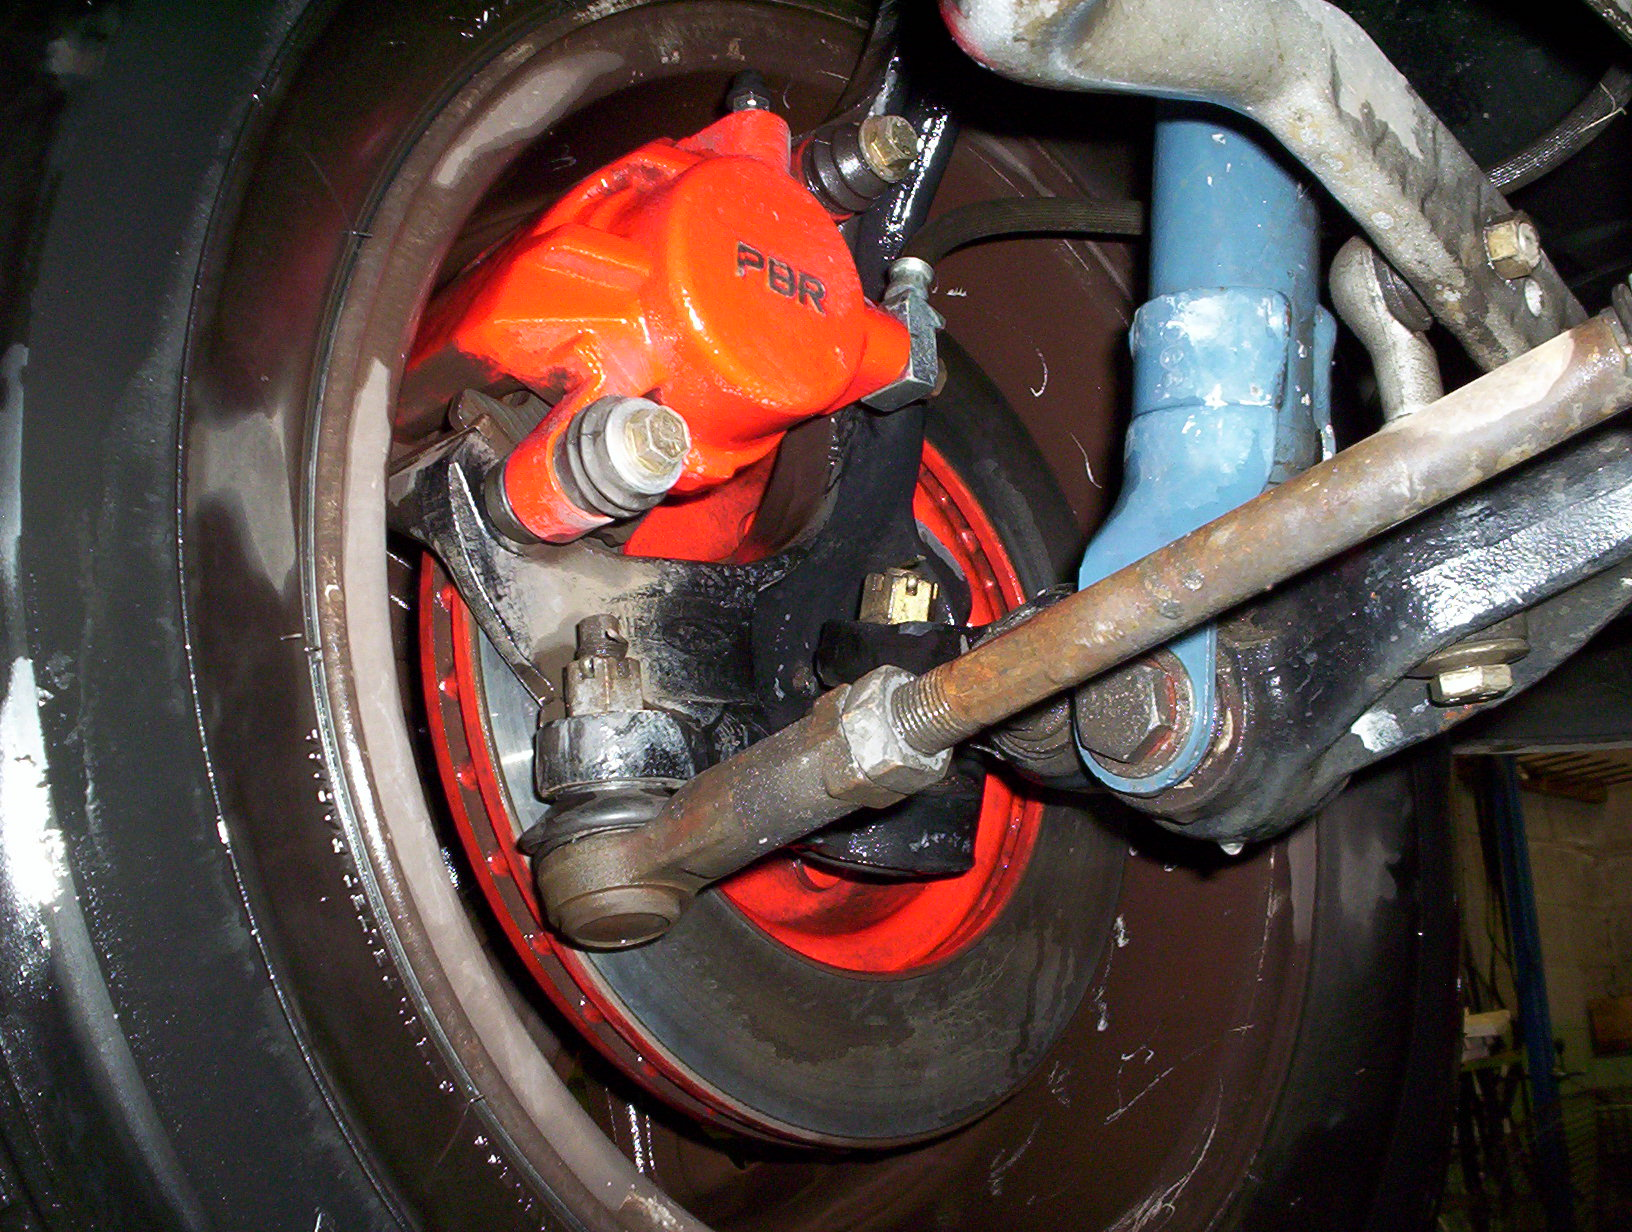 My Front brakes on 88EA sedan. 002.jpg